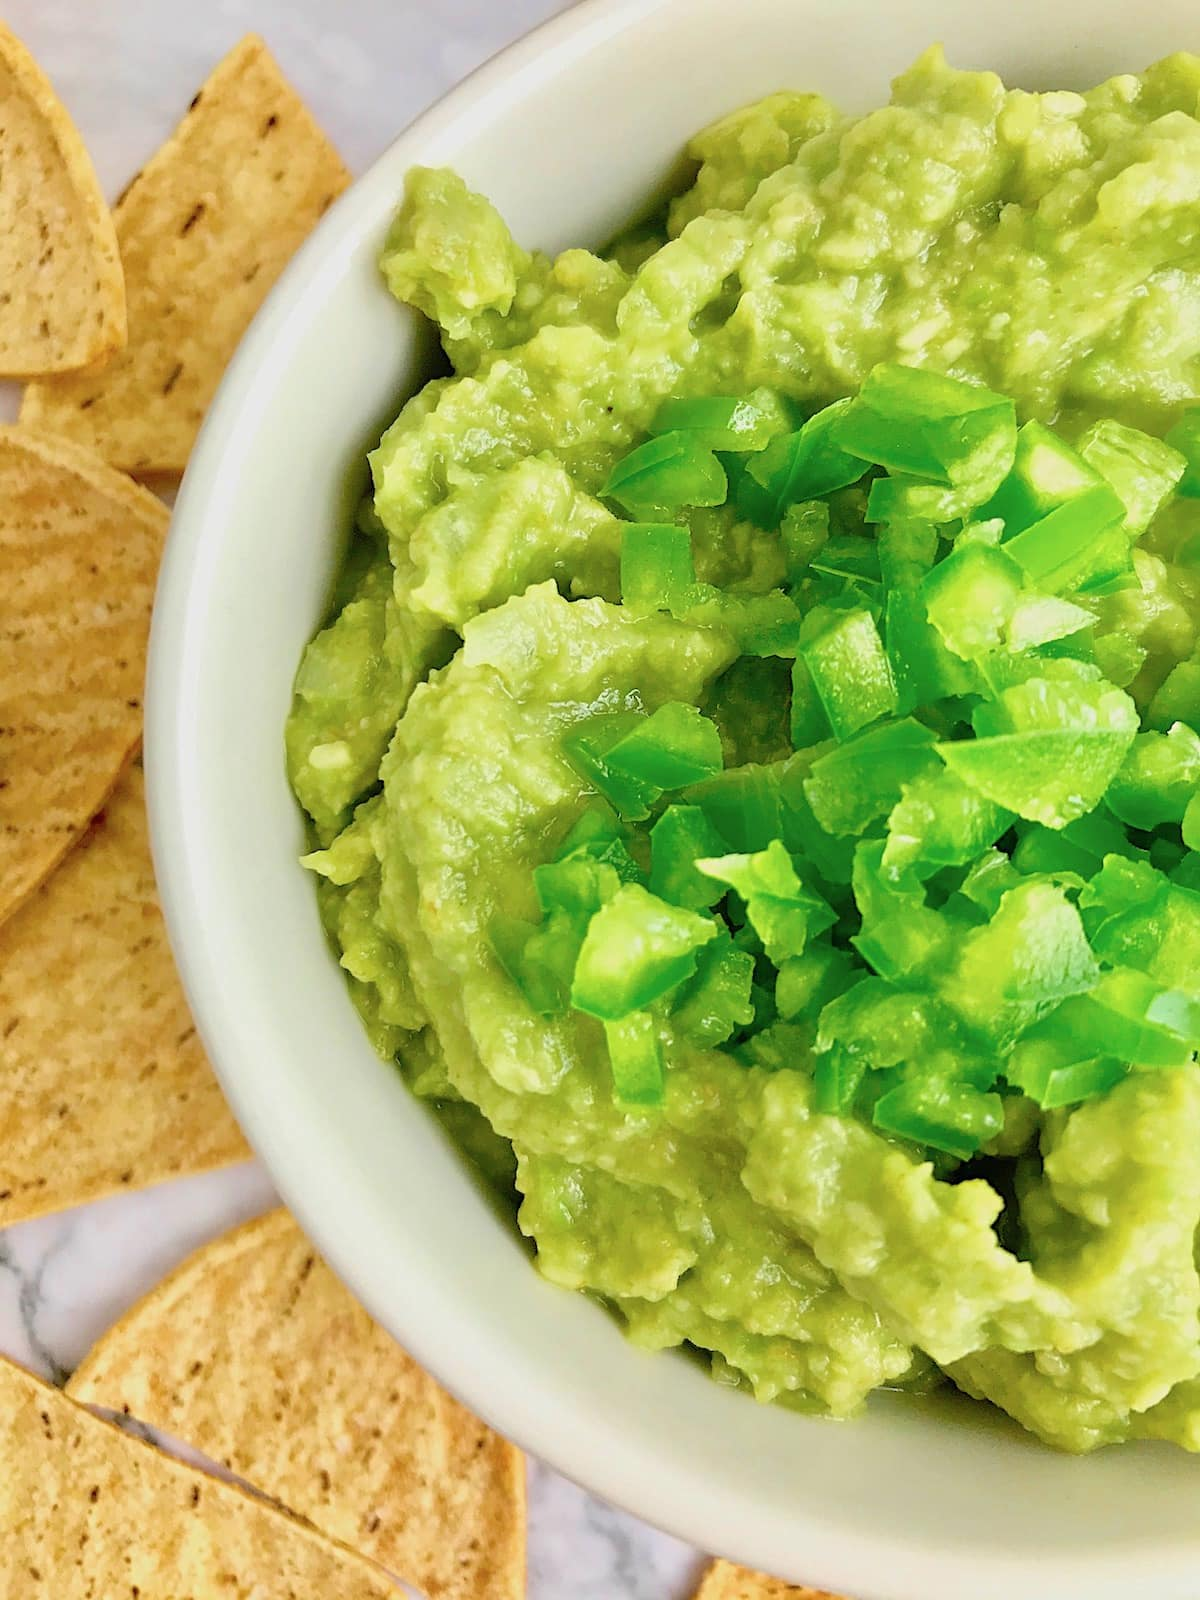 Tortilla chips on a table next to half of a bowl of guacamole topped with chopped green jalapeno pepper.